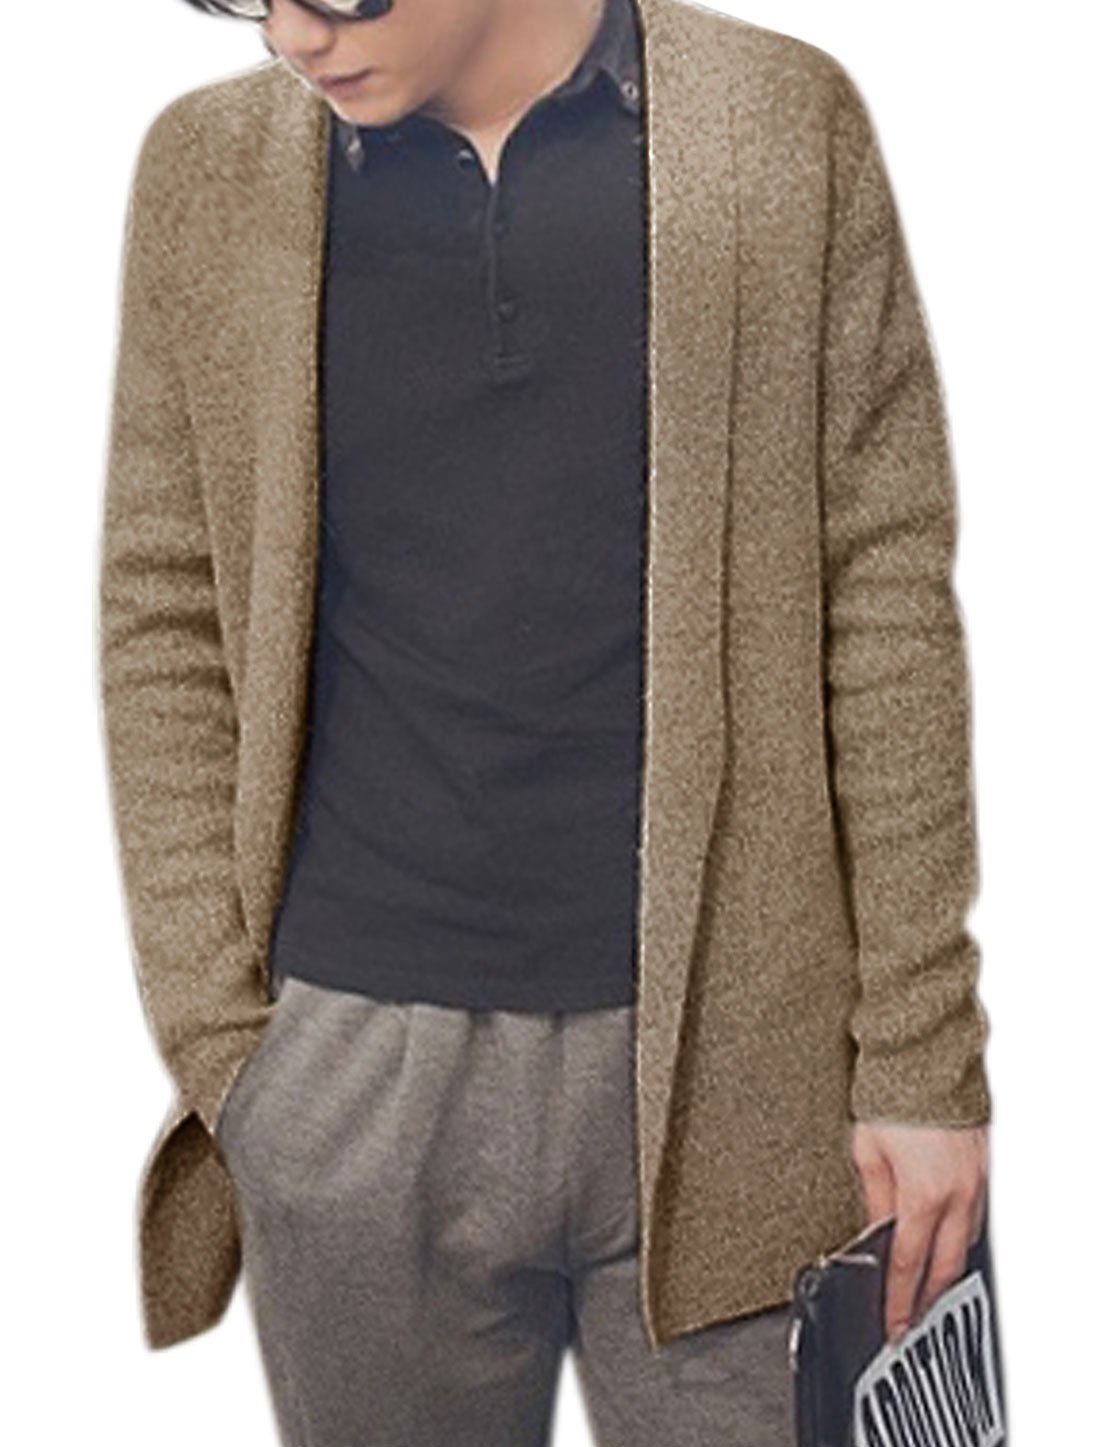 Men Long Sleeves Shawl Collar Open Front Cardigan Beige M